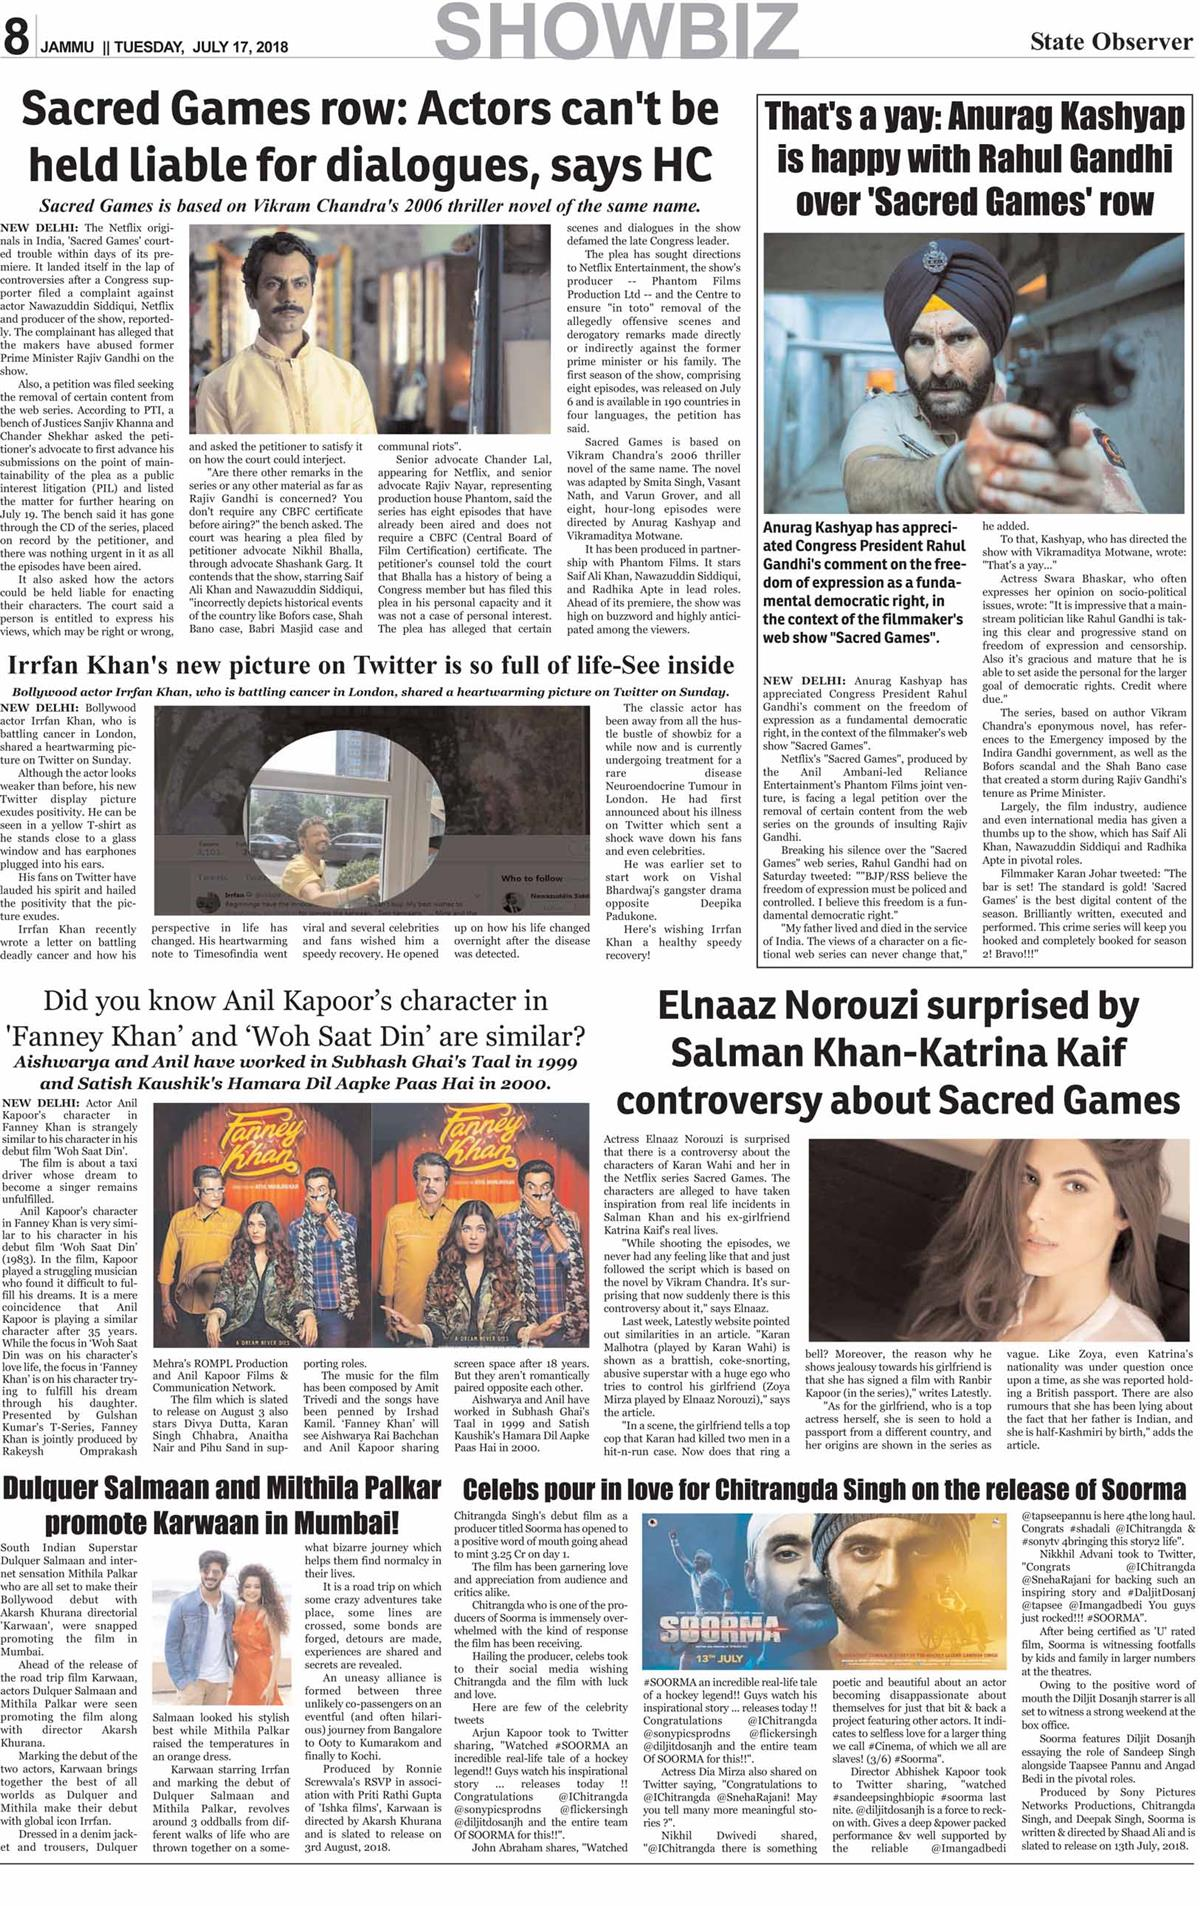 Daily State Observer